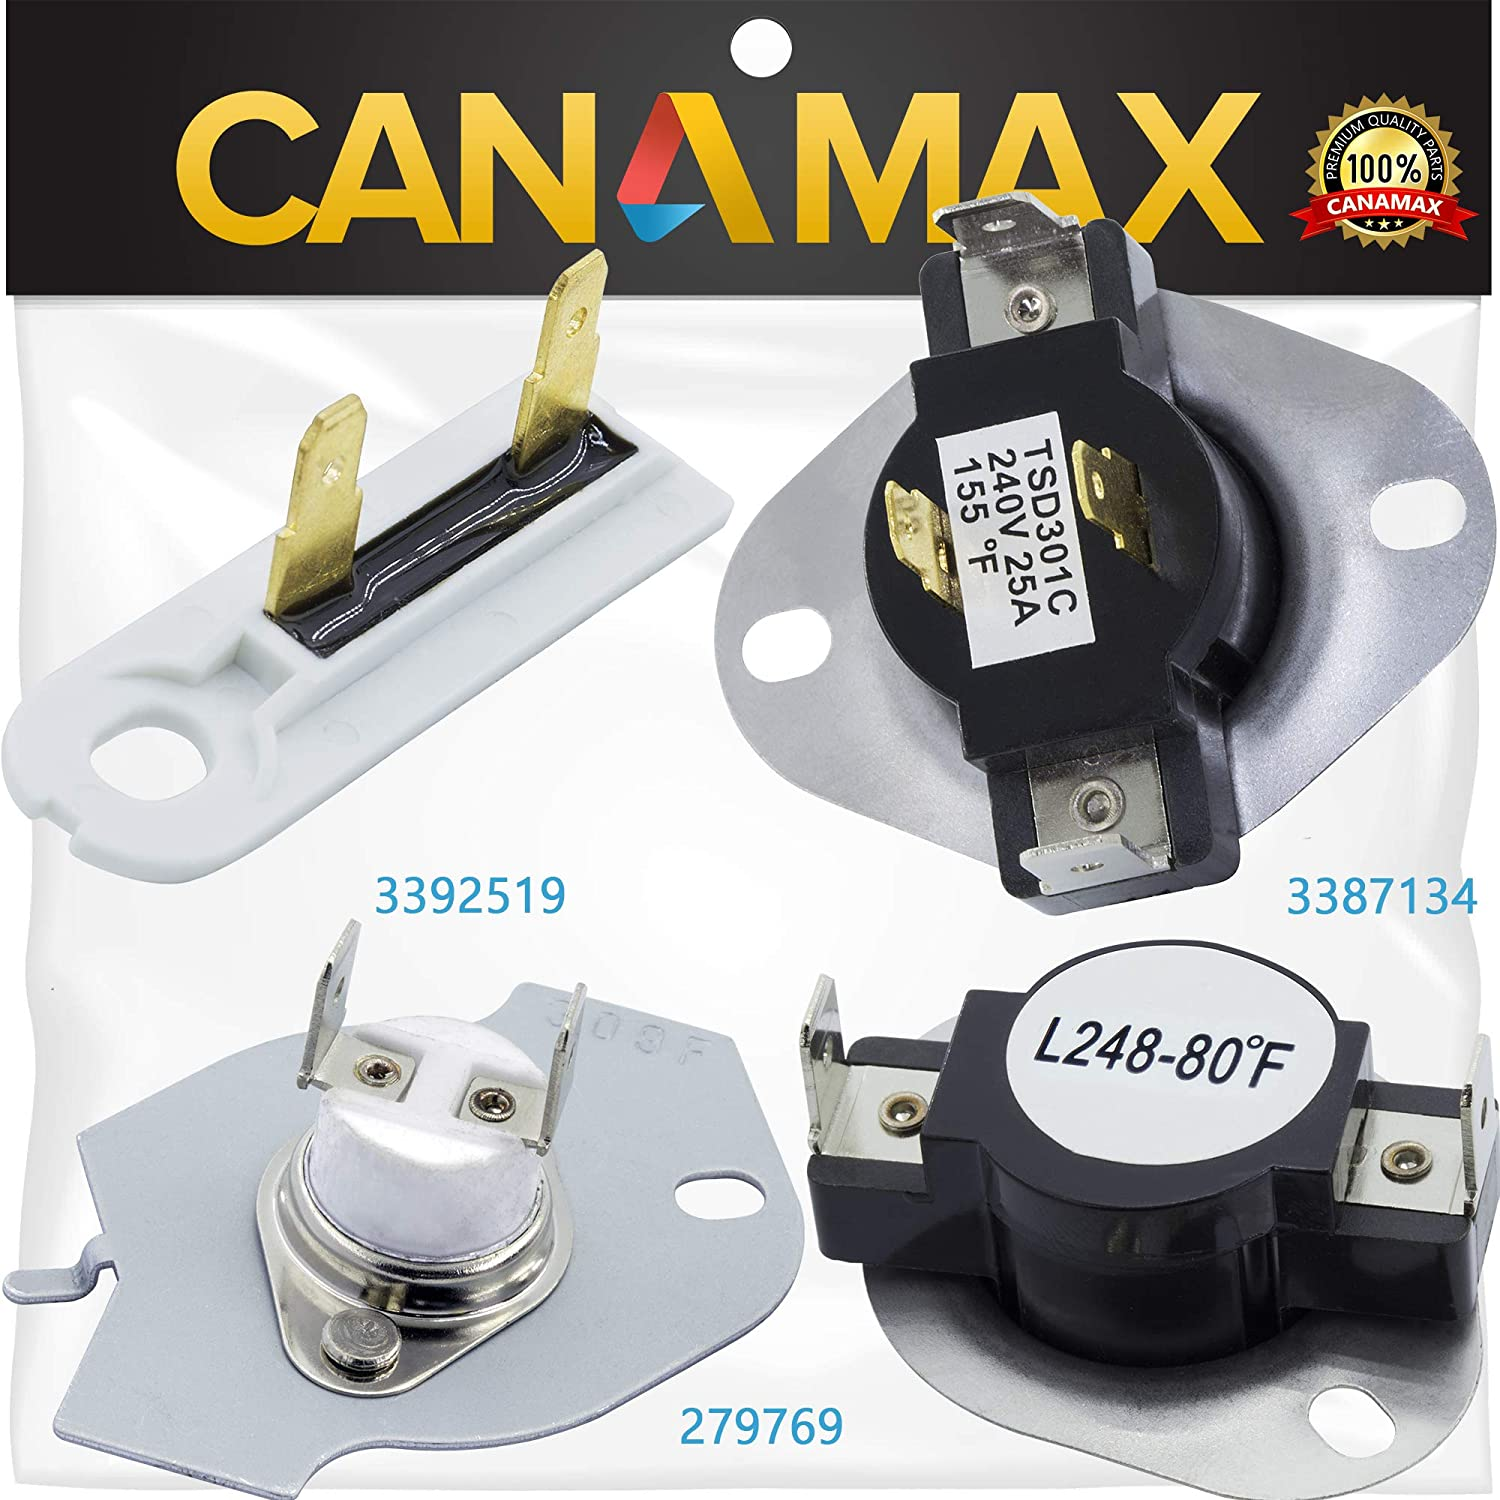 279769 & 3387134 & 3392519 Dryer Thermal Cut-off Fuse & Thermostat COMPLETE Kit Premium Replacement by Canamax - Compatible with Whirlpool Kenmore Dryers - Replaces 3977394 3390291 PS345113 AP6008325